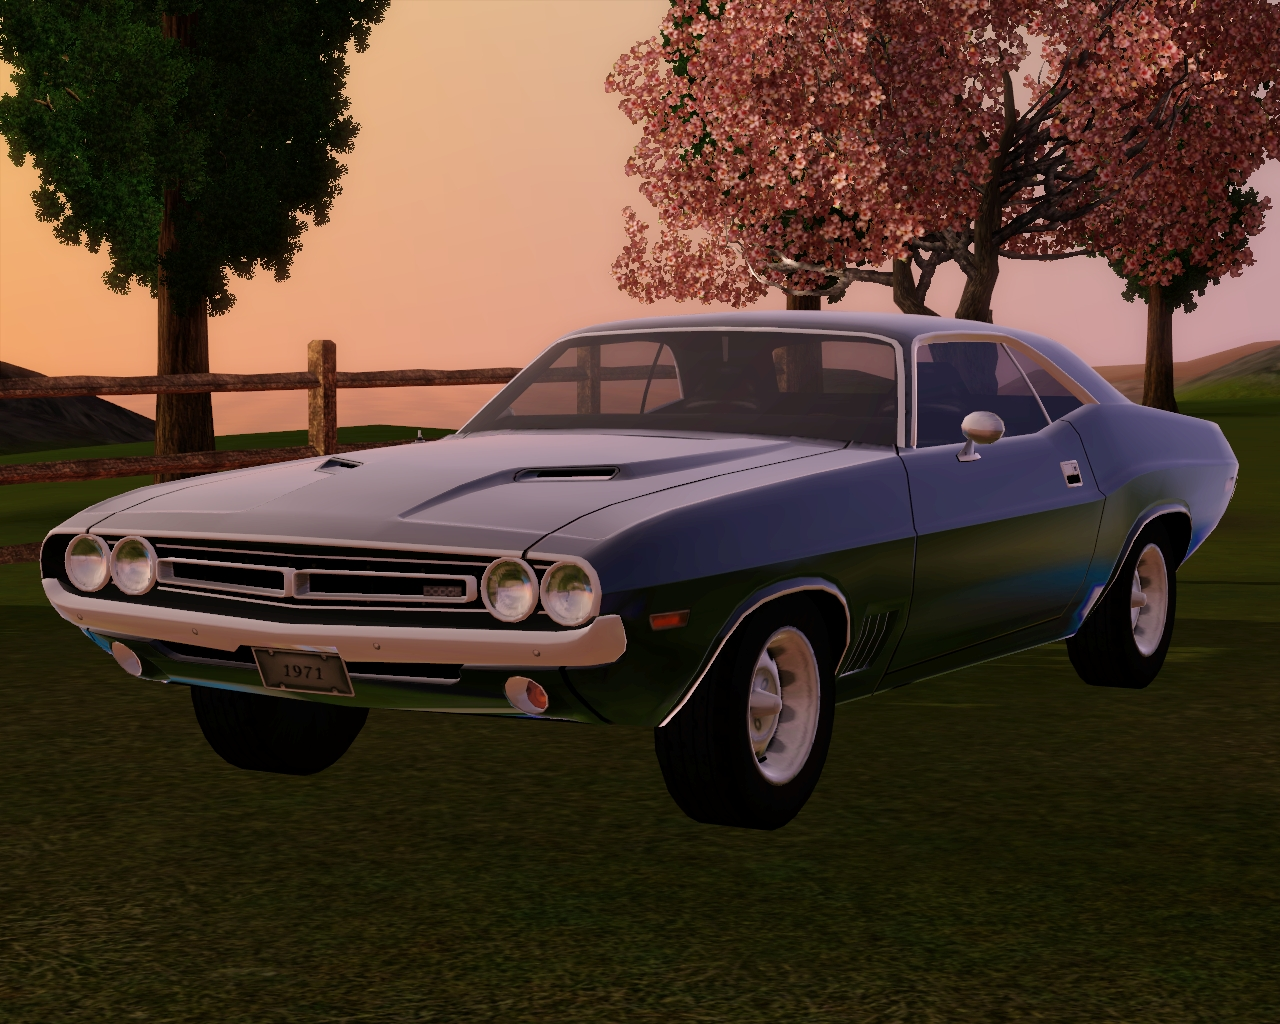 1971 Dodge Challenger by Fresh-Prince